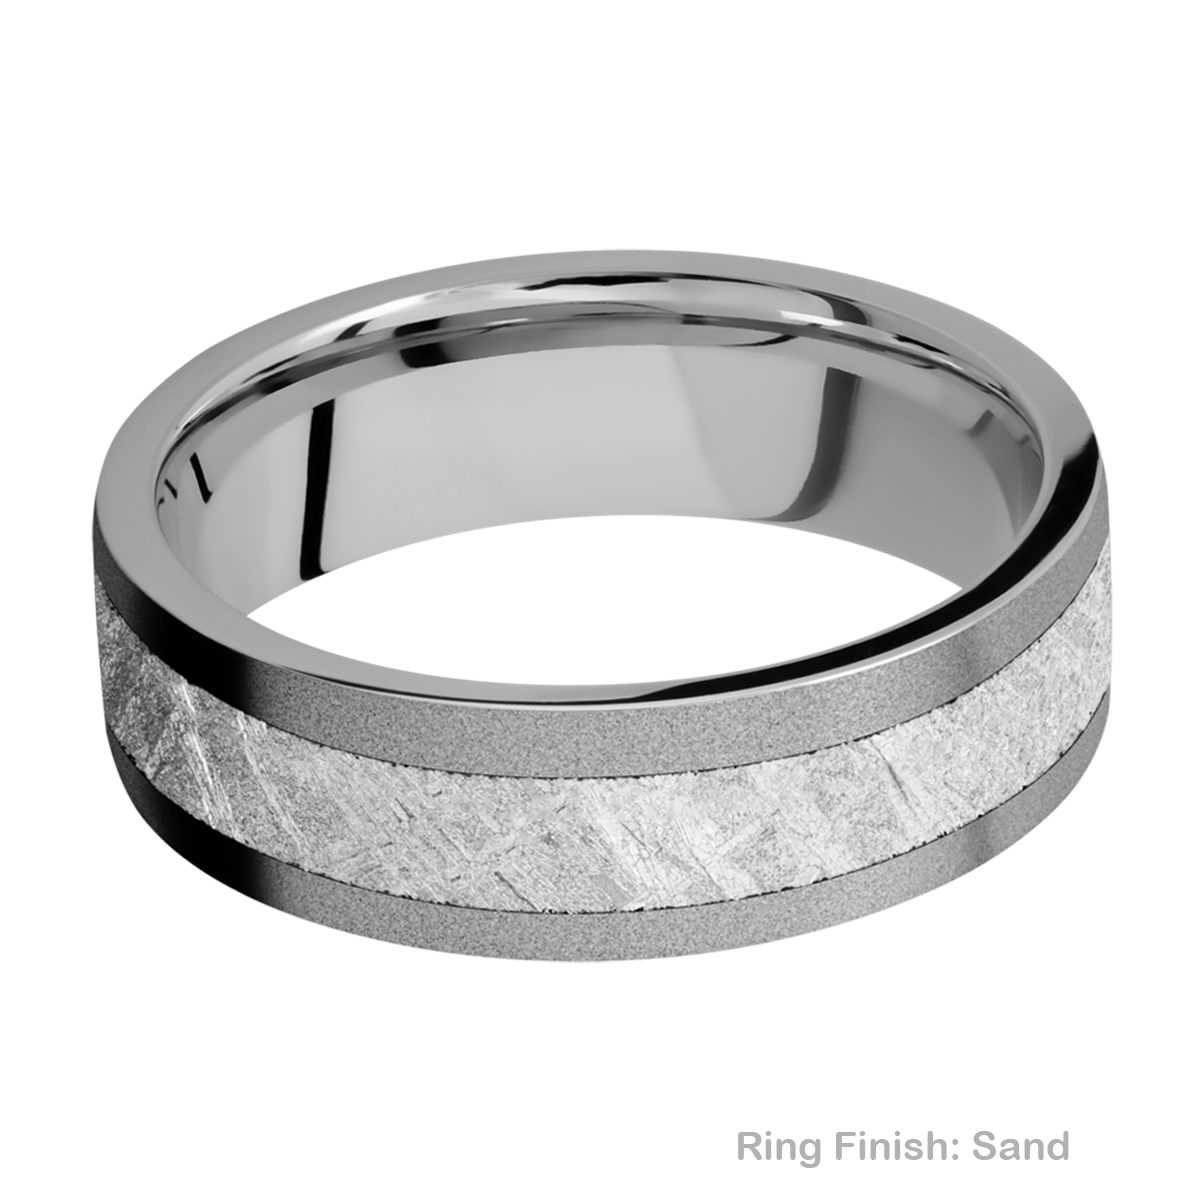 Lashbrook 7F14/METEORITE Titanium Wedding Ring or Band Alternative View 4